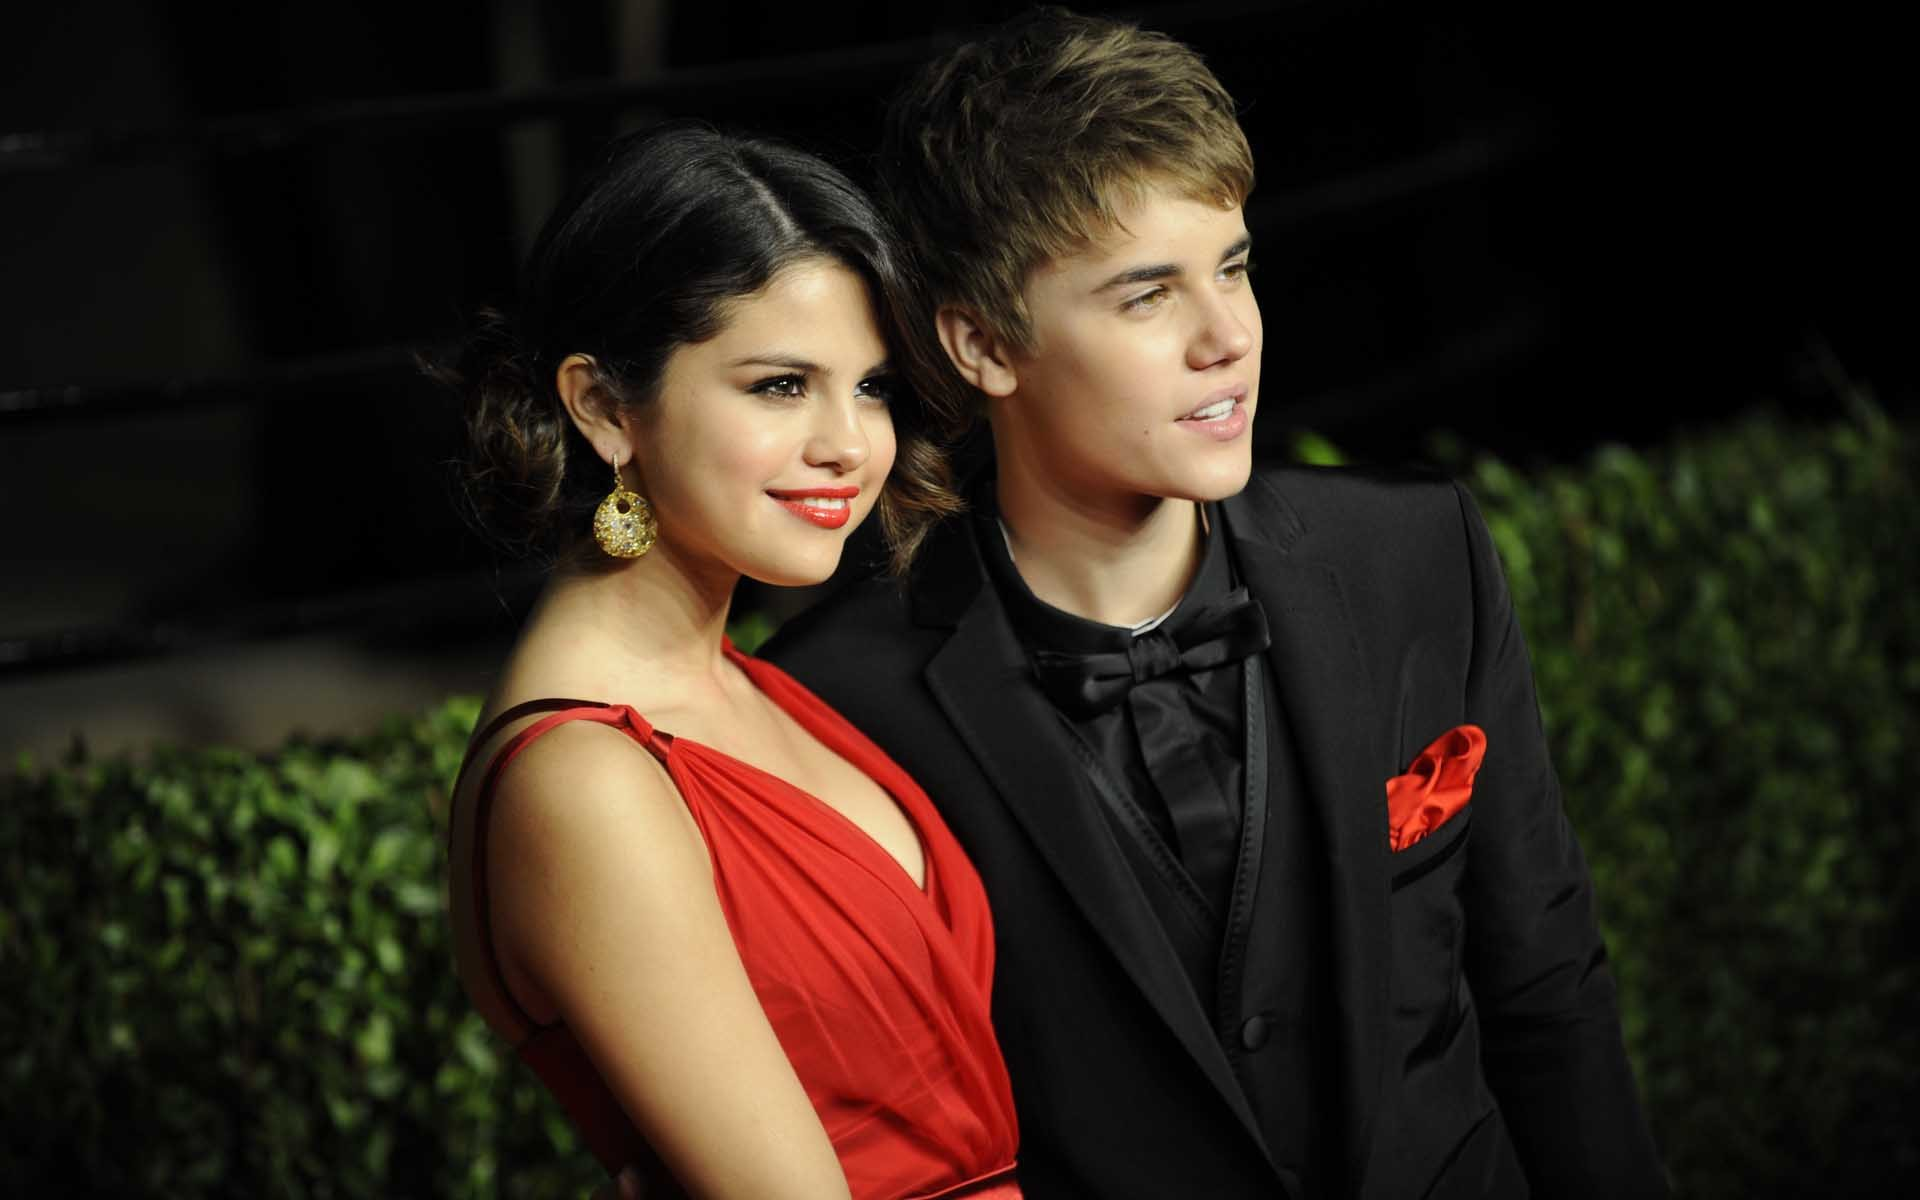 Lost Love photos of Justin Bieber and Selena Gomez so Cute